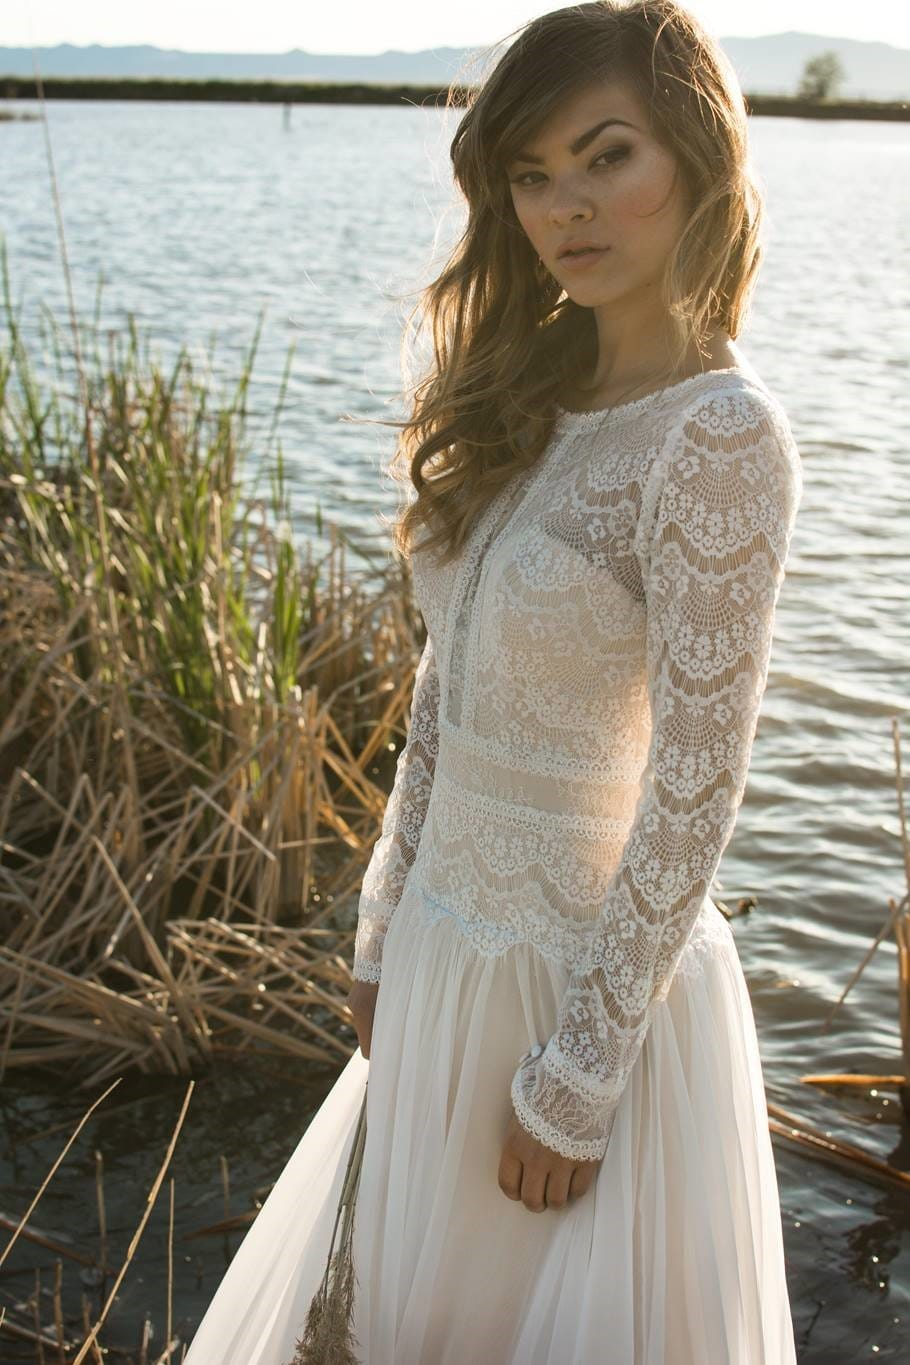 Golden Sunlight and Boho Brides - Styled Shoot Boho Wedding Dresses by Sottero and Midgley and Maggie Sottero